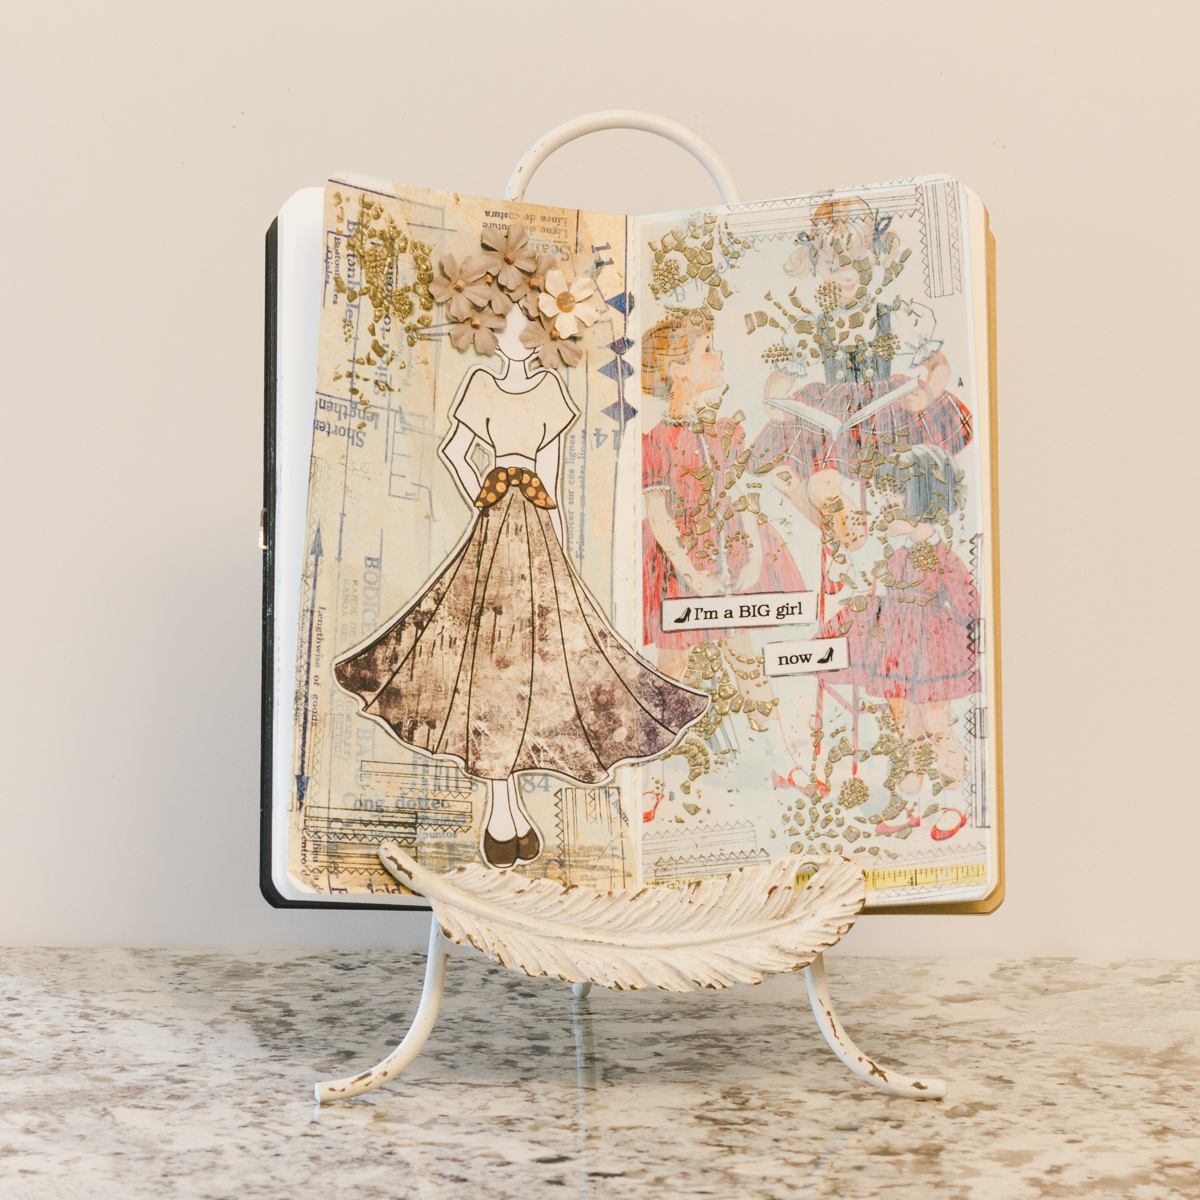 Mixed Media page using Prima Marketing products and Vintage sewing patterns